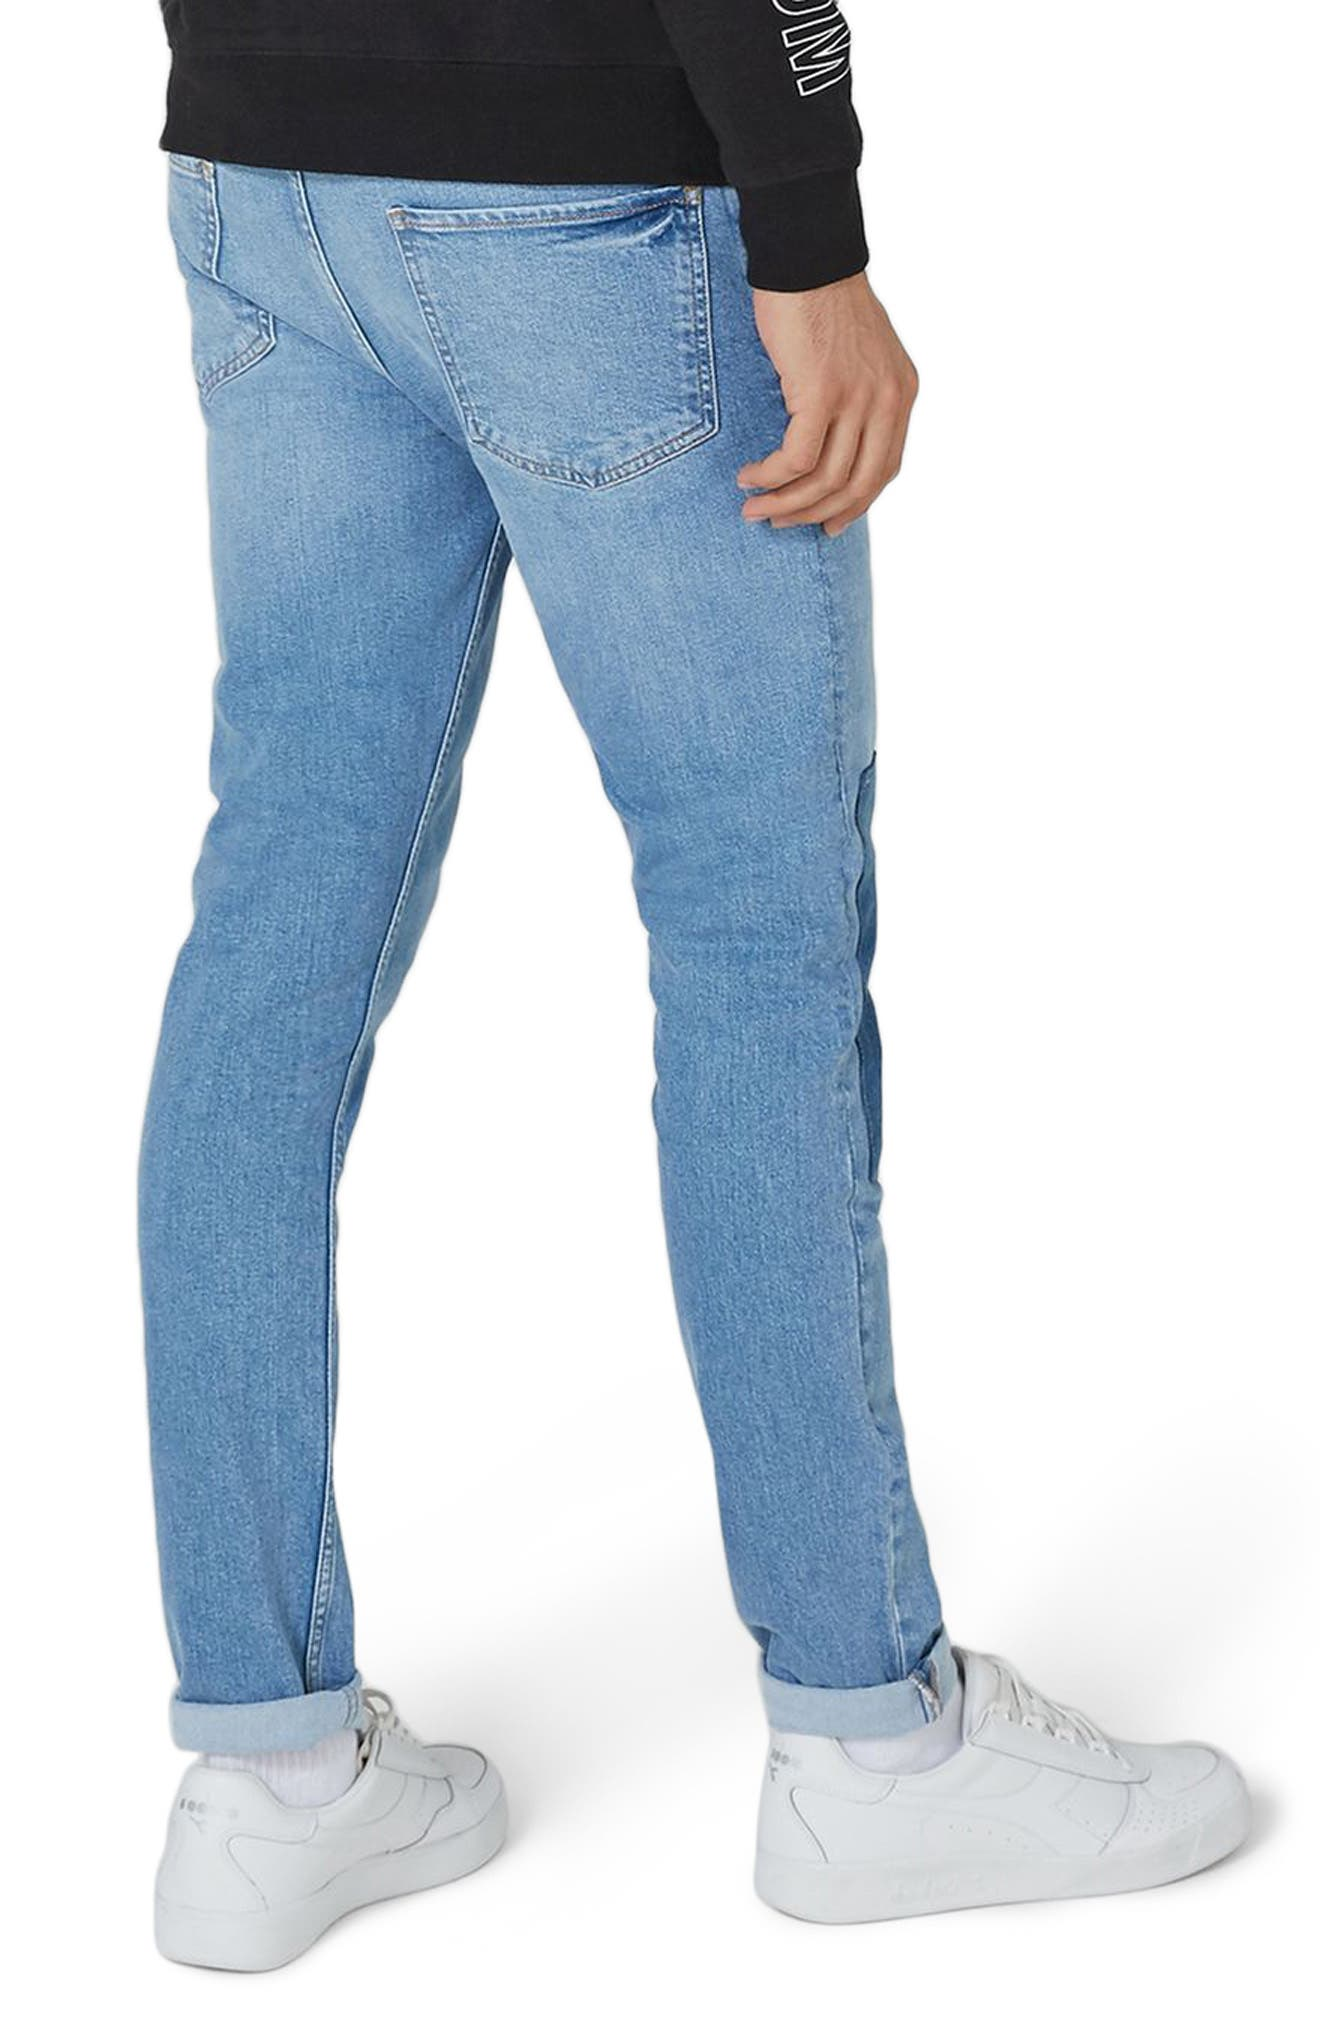 Patch Stretch Skinny Jeans,                             Alternate thumbnail 2, color,                             400